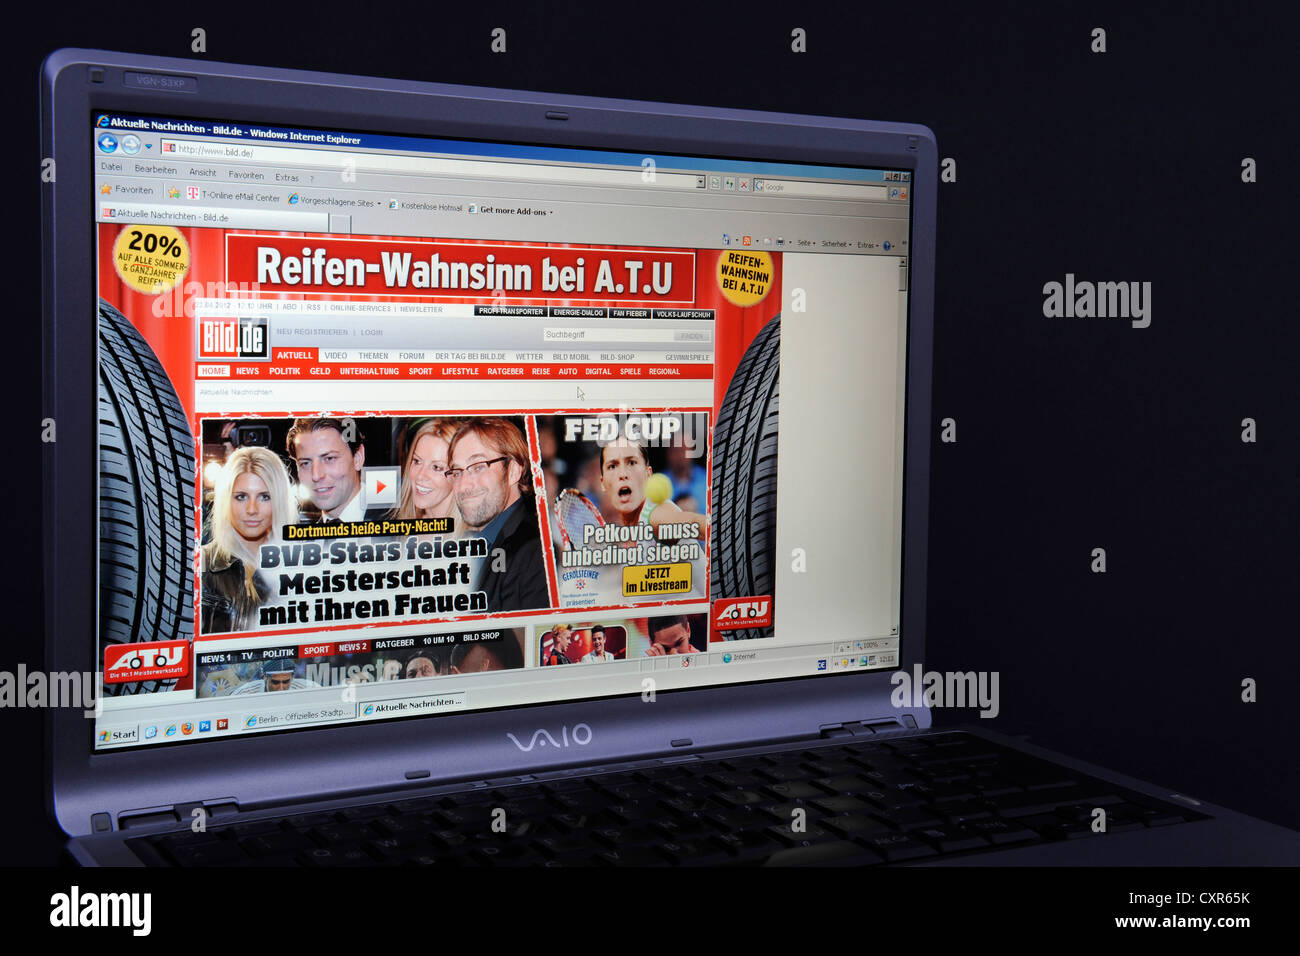 Website, Bild online webpage on the screen of a Sony Vaio laptop, a German tabloid - Stock Image